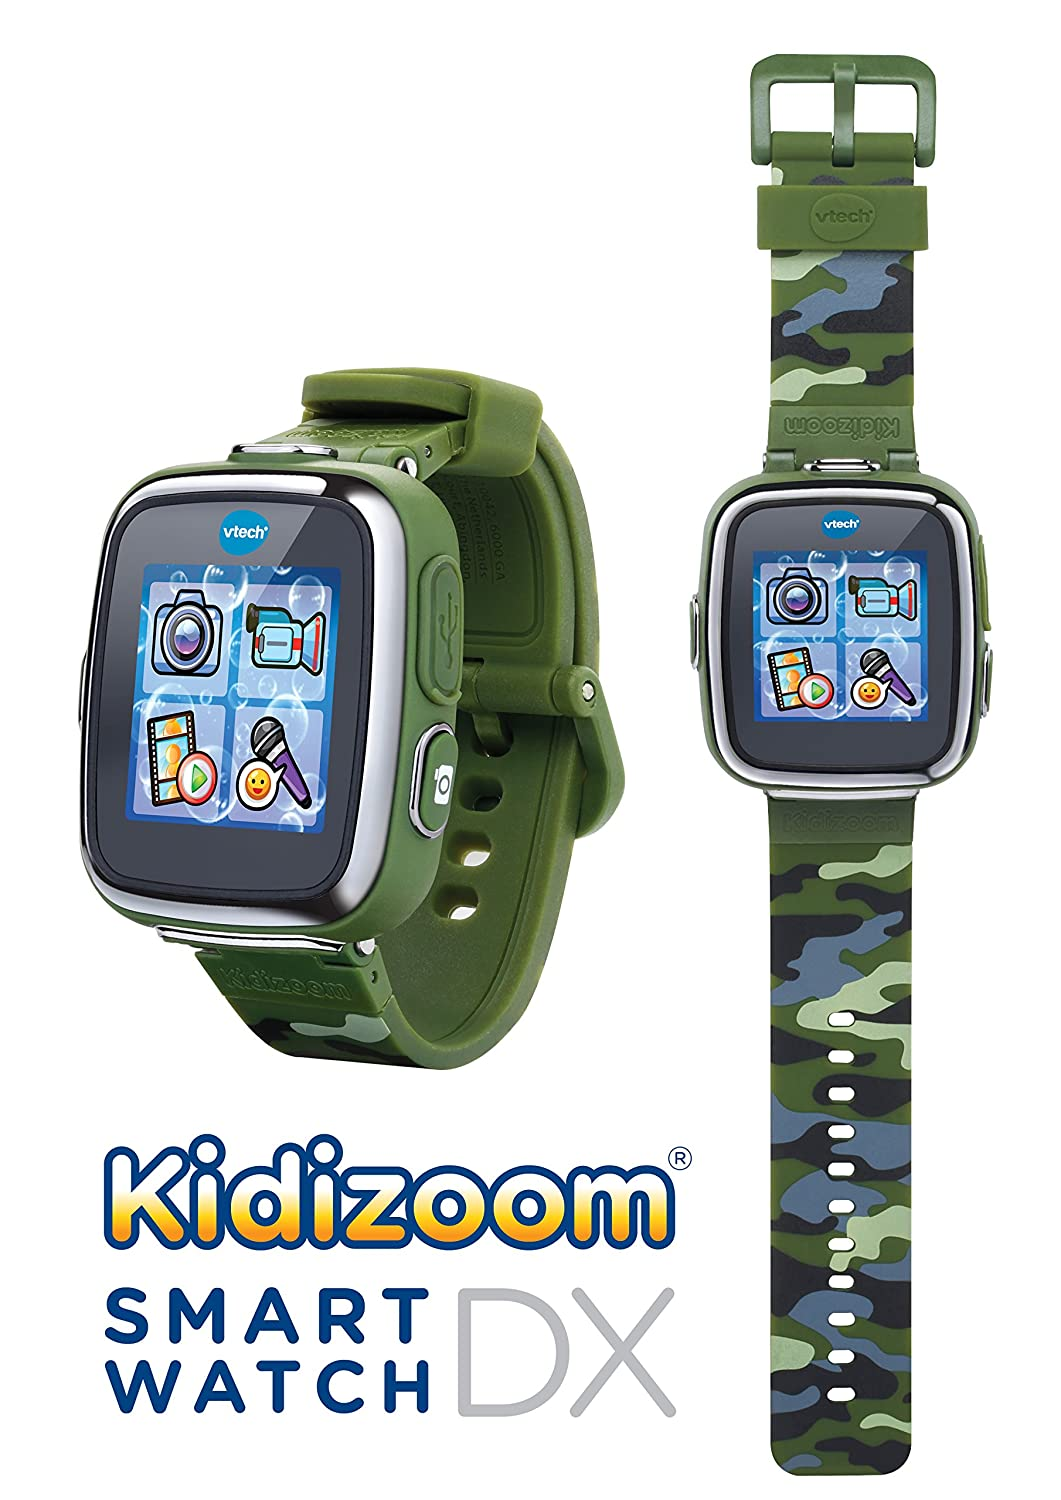 VTech- Reloj multifunción Kidizoom Smart Watch DX, Color Camuflaje (80-171677)